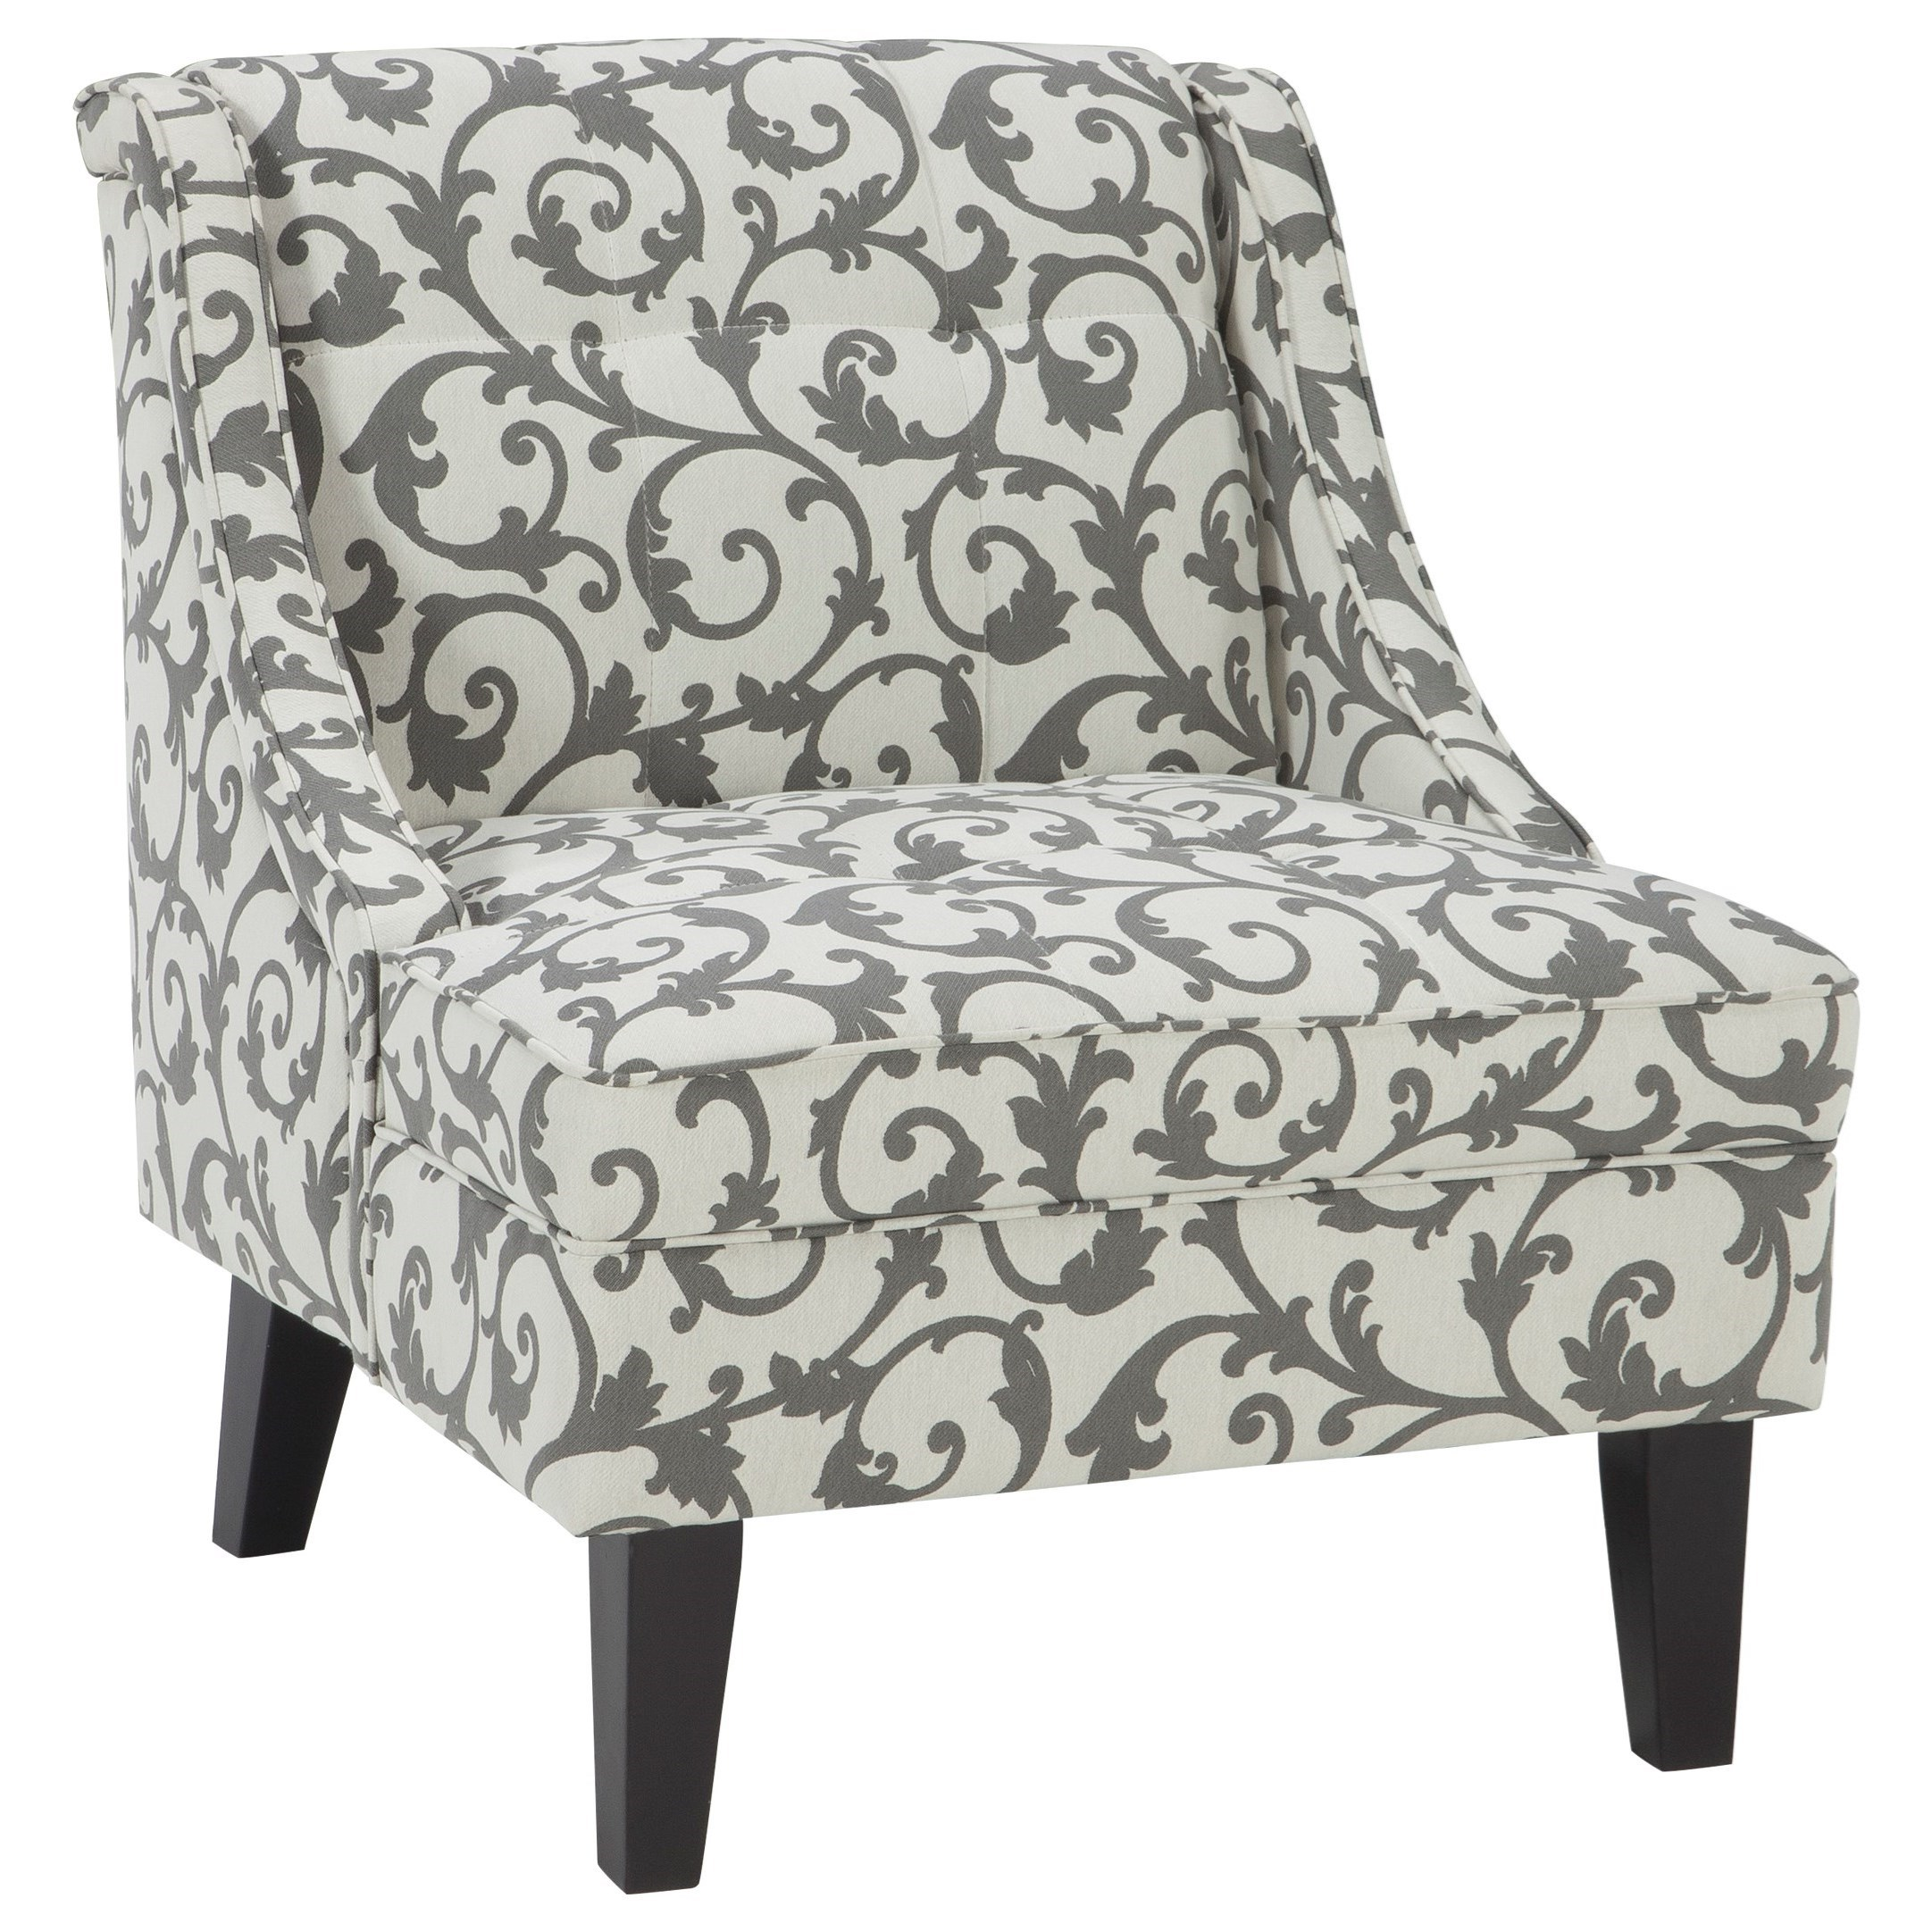 1050160 Ashley Furniture Kexlor Living Room Accent Chair